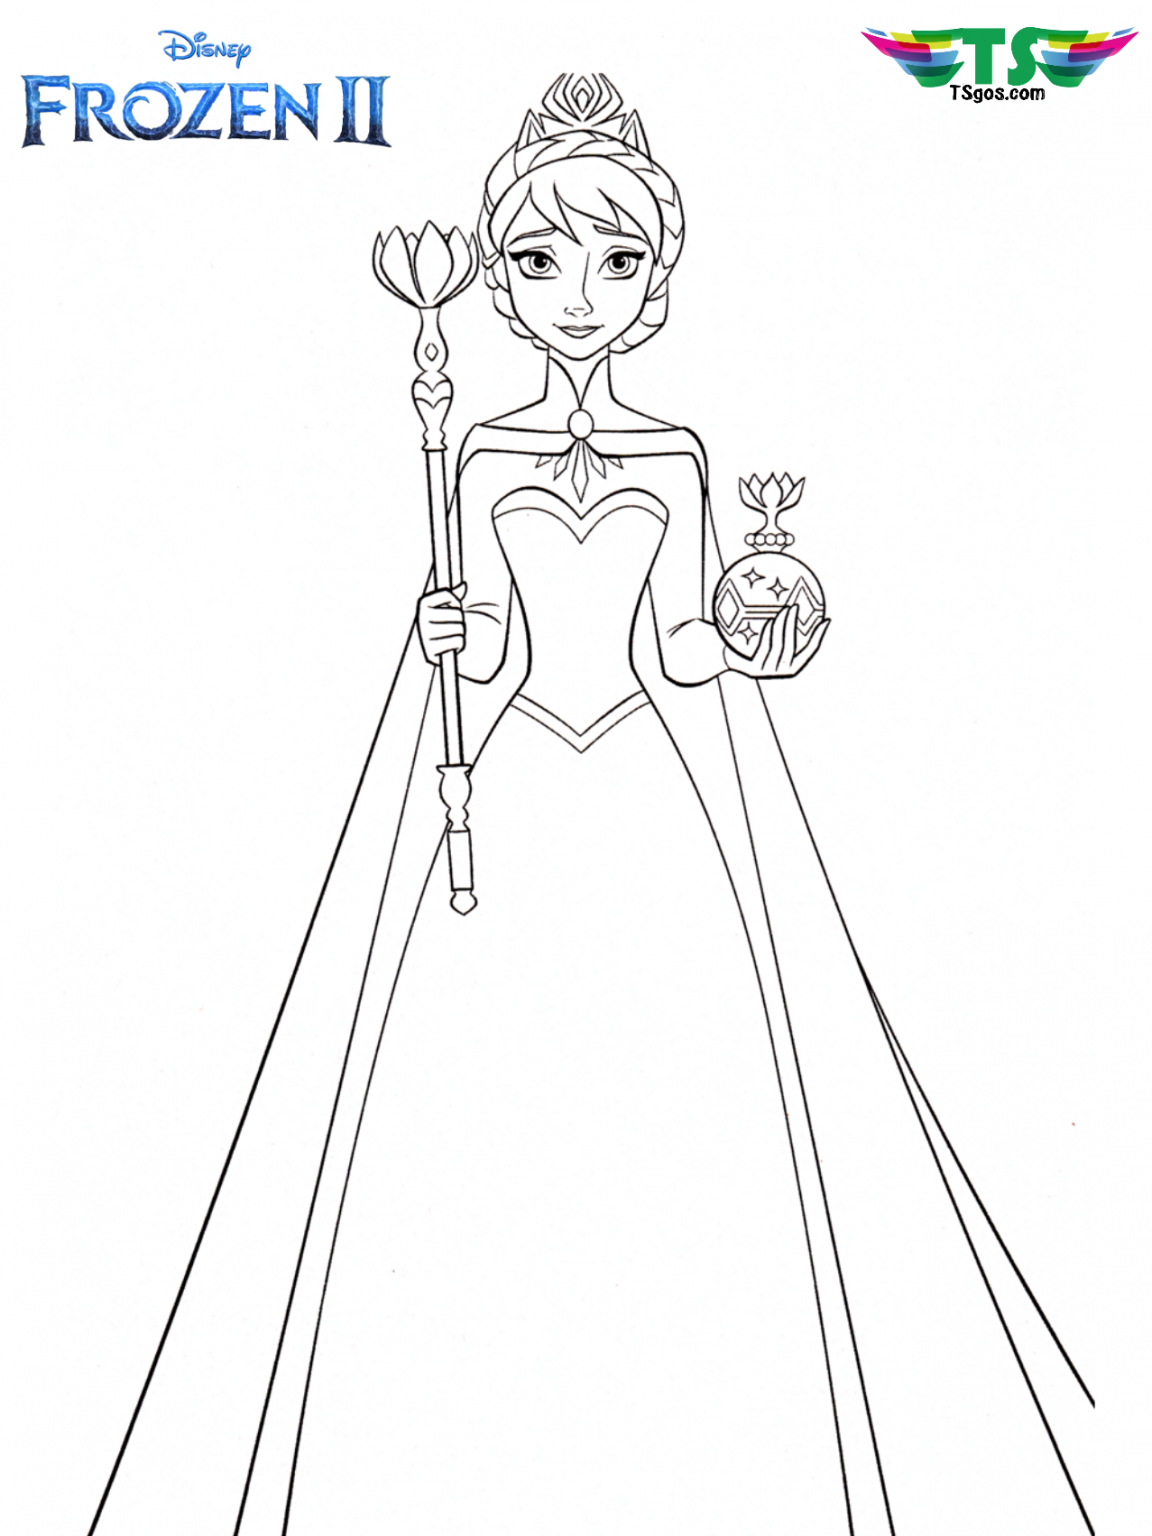 Queen Elsa And Crown Frozen 2 Coloring Page In 2020 Elsa